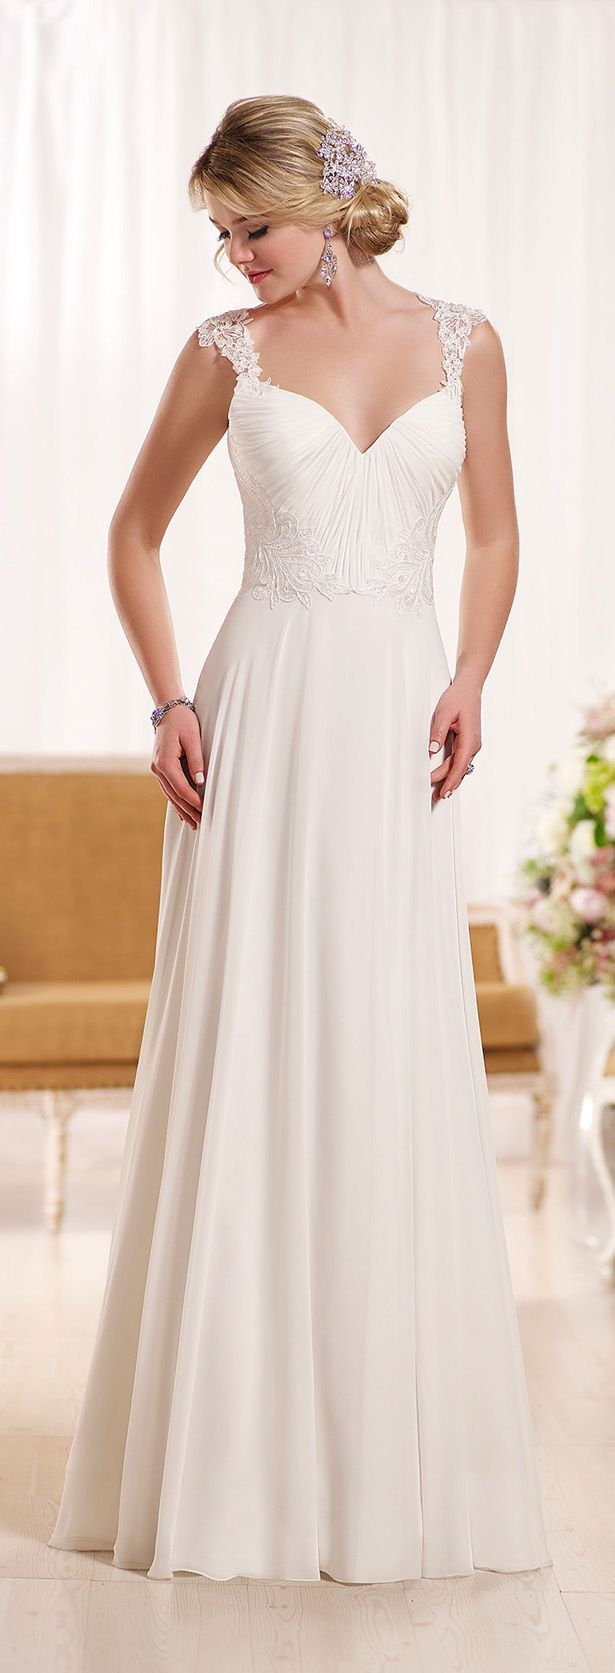 Wedding Dresses  Sydney : Wedding dresses sydney spring weddings beach